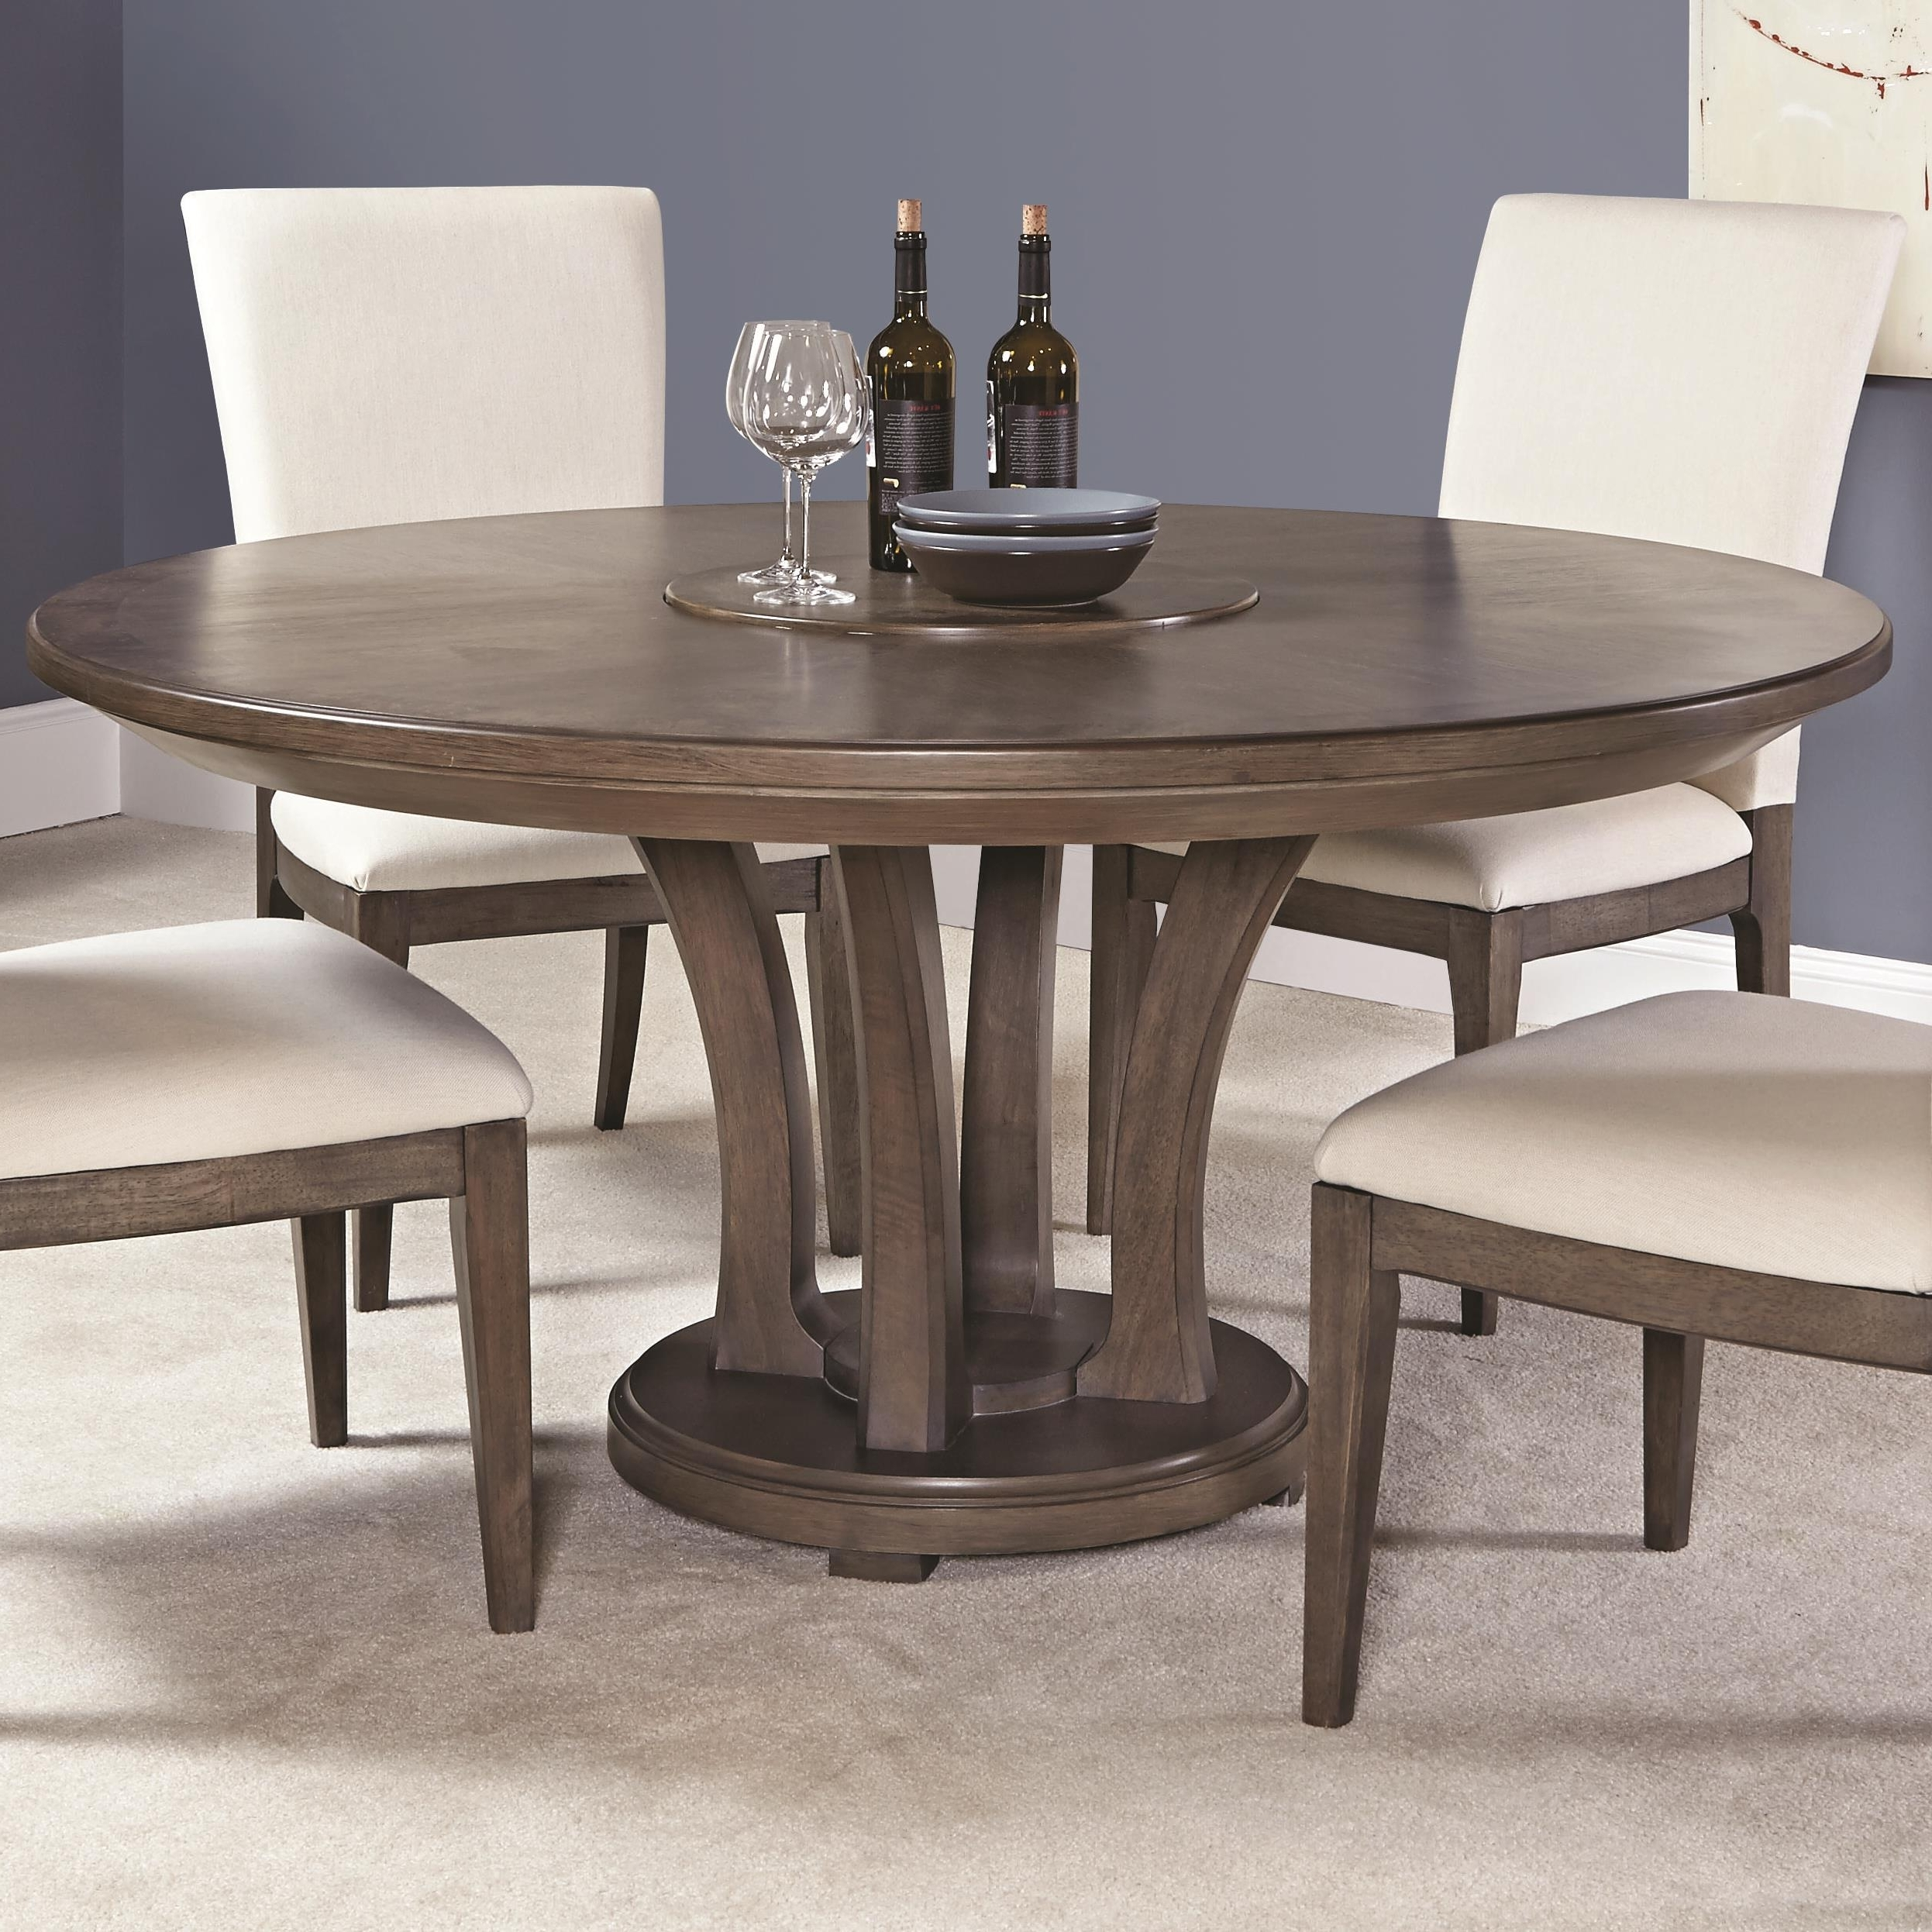 Fashionable Contemporary 62 Inch Round Dining Table With Trestle Base Pertaining To Contemporary Base Dining Tables (View 12 of 25)